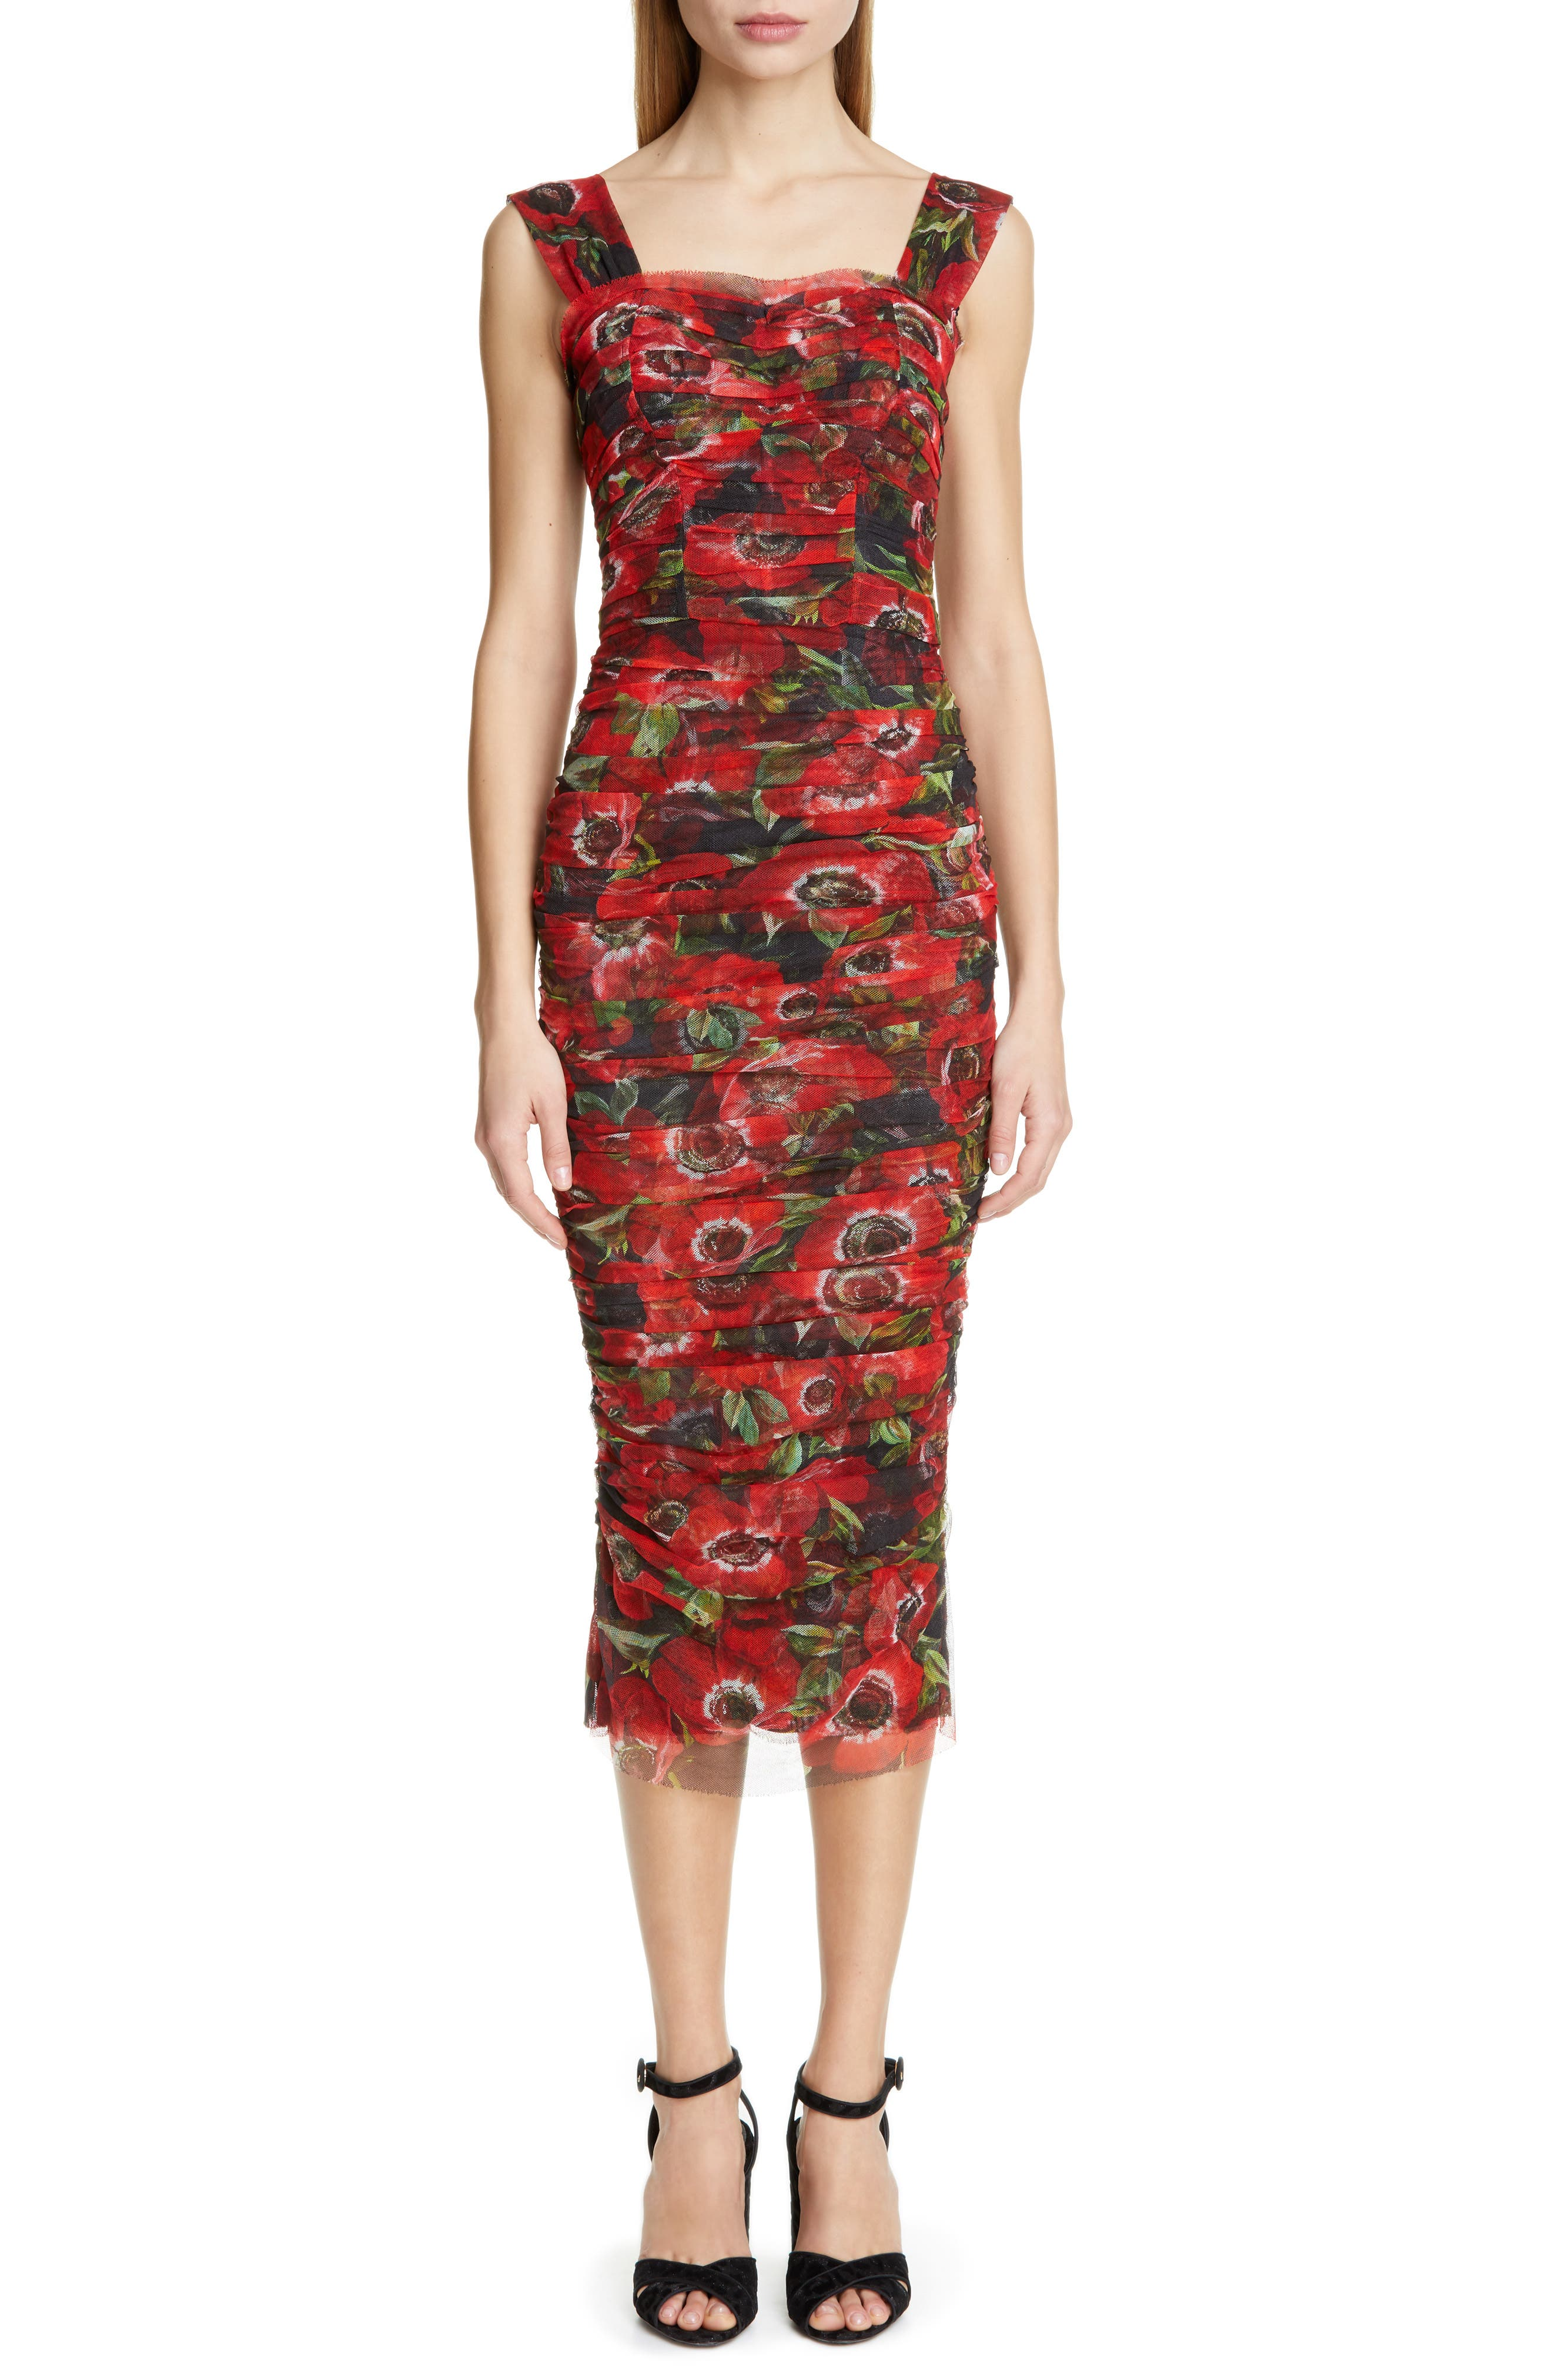 Dolce & gabbana Floral Print Ruched Tulle Sheath Dress, 8 IT - Red